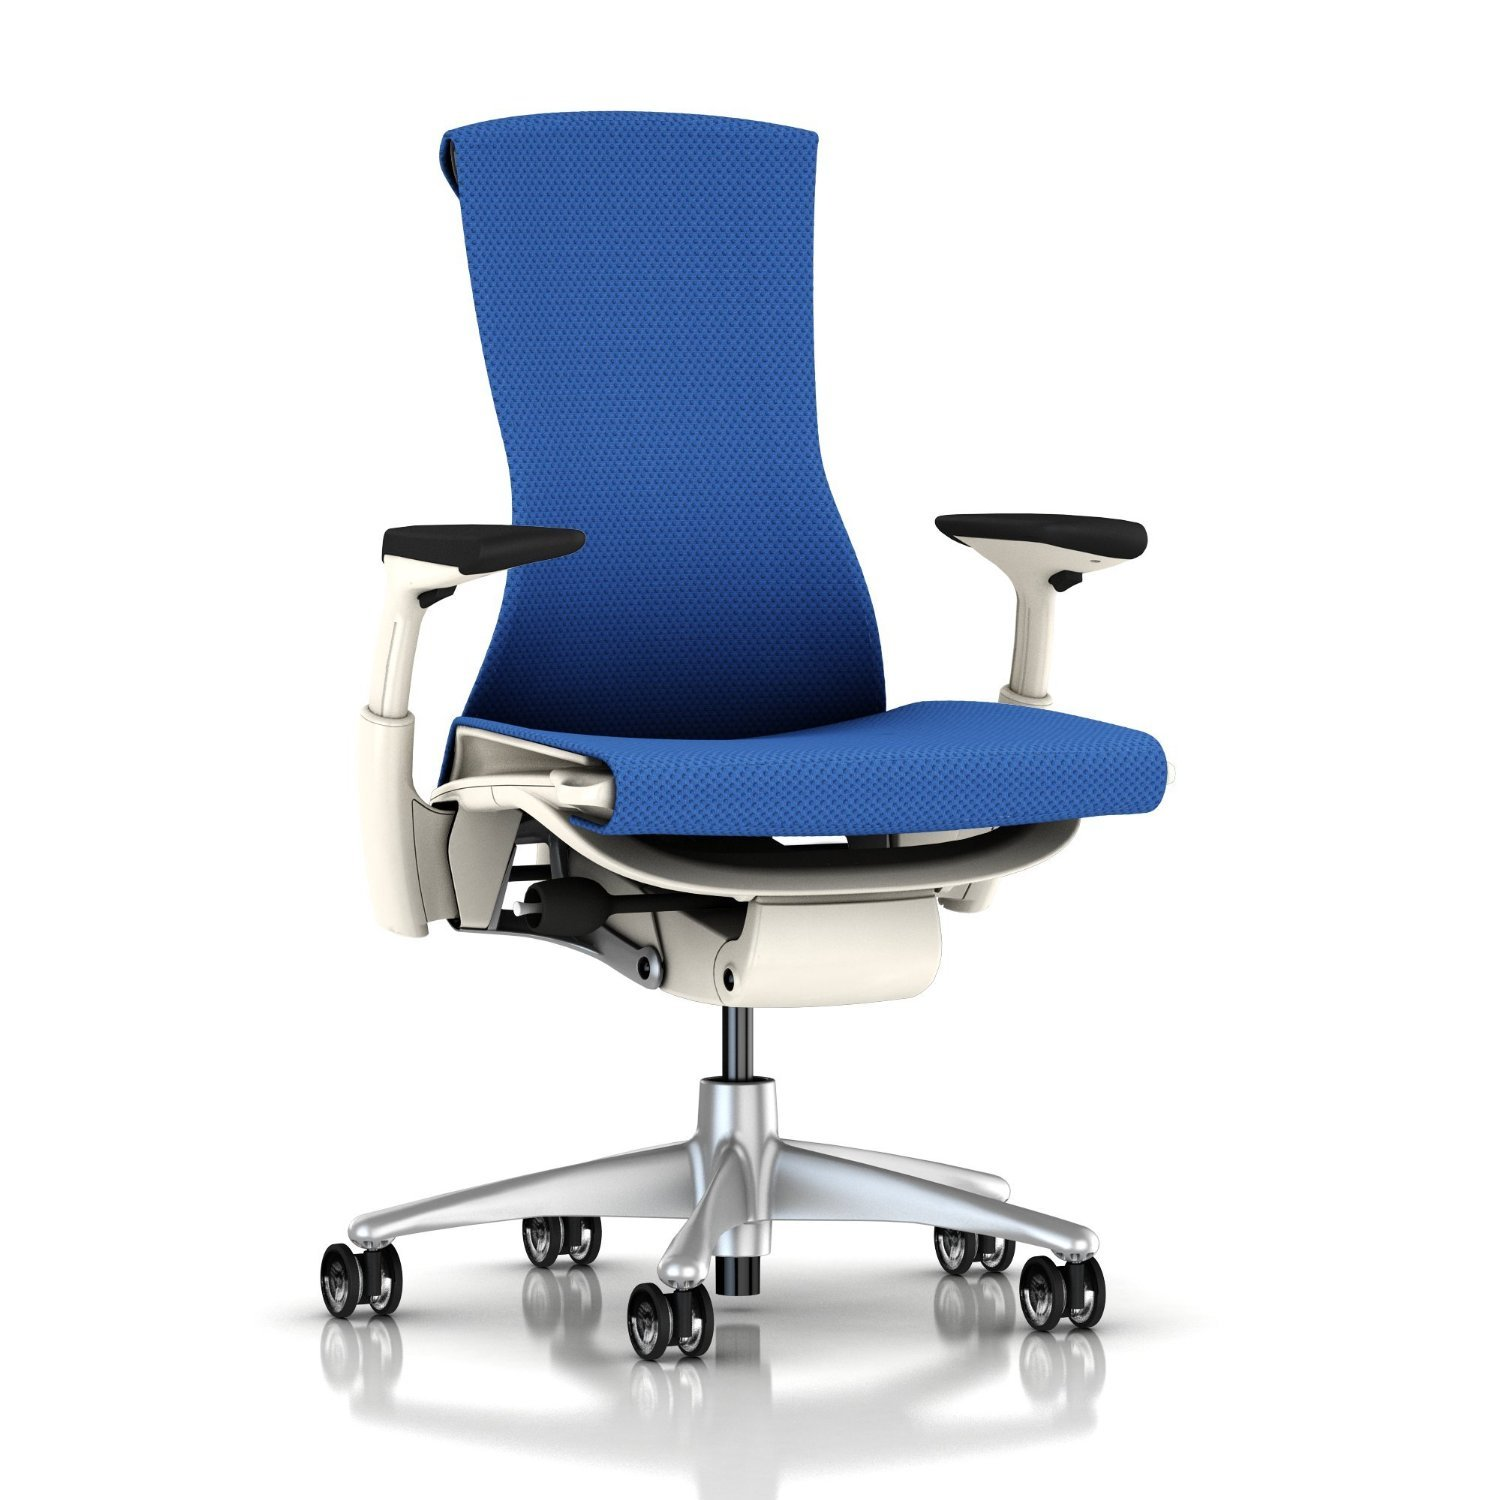 Herman Miller Embody Ergonomic Office Chair with White Frame/Titanium Base | Fully Adjustable Arms and Translucent Casters | Berry Blue Balance